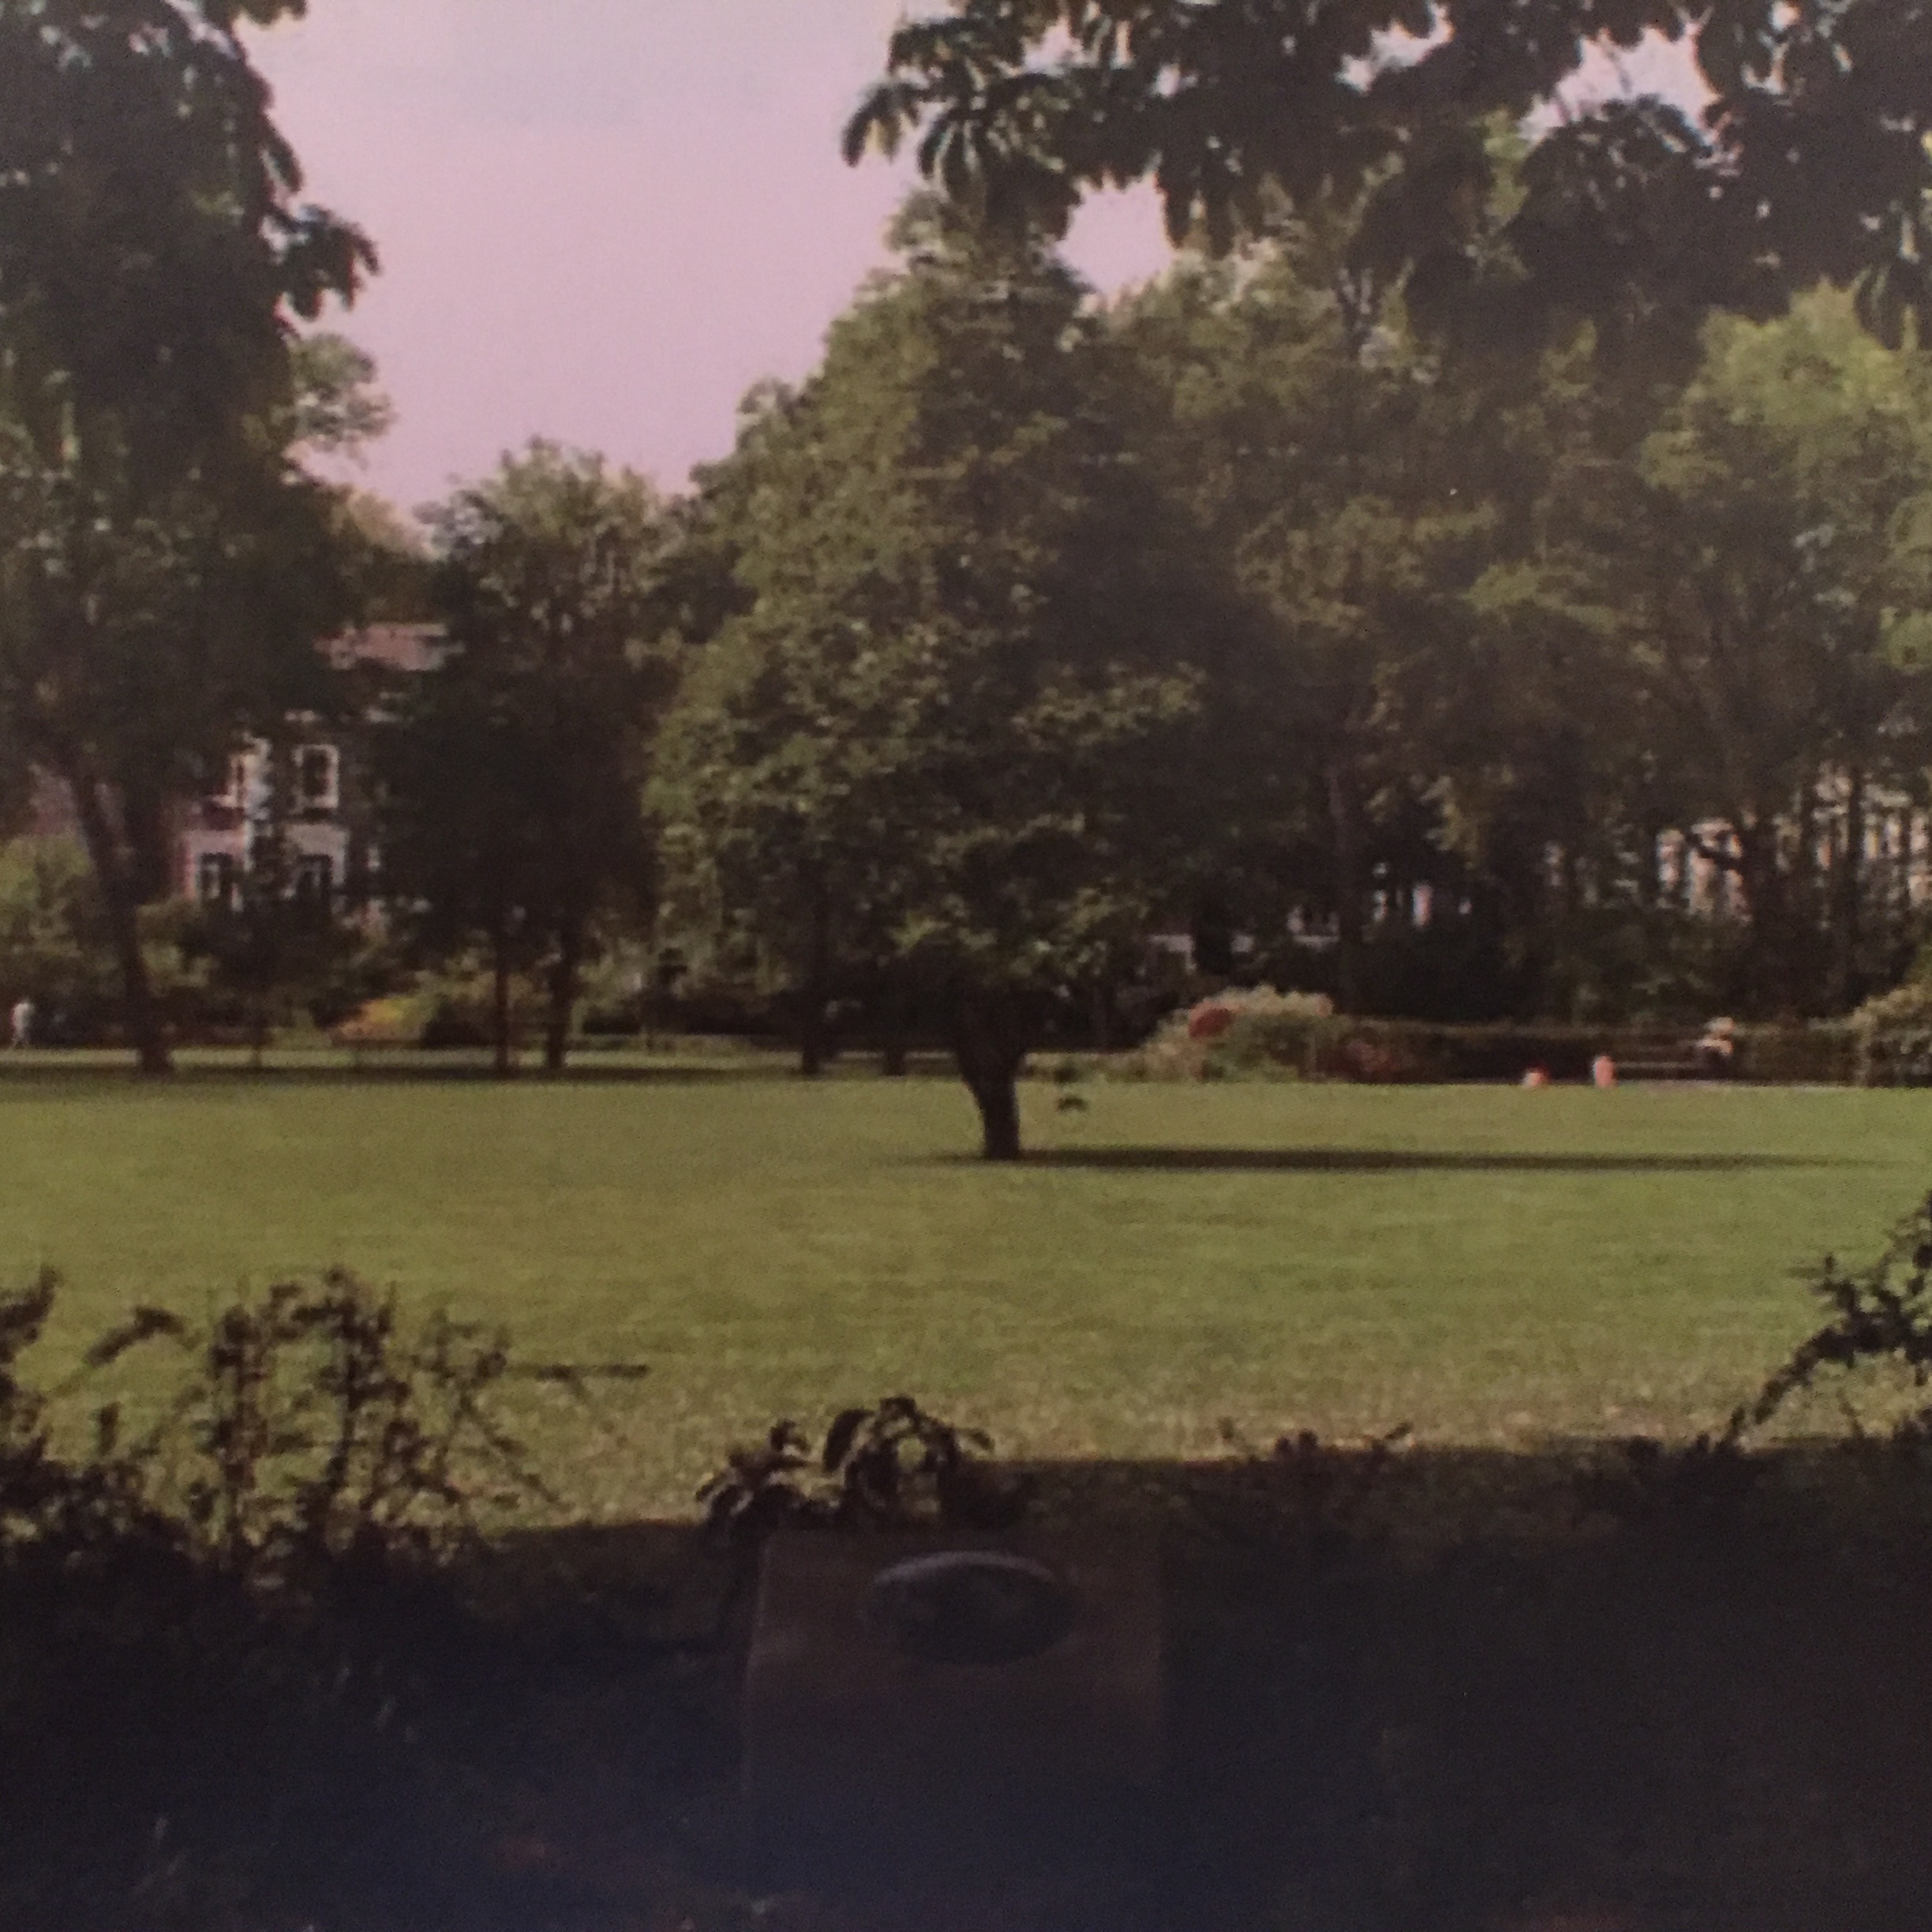 1 Bedroom Apartments In London: Onslow Square, London, SW7 3NH